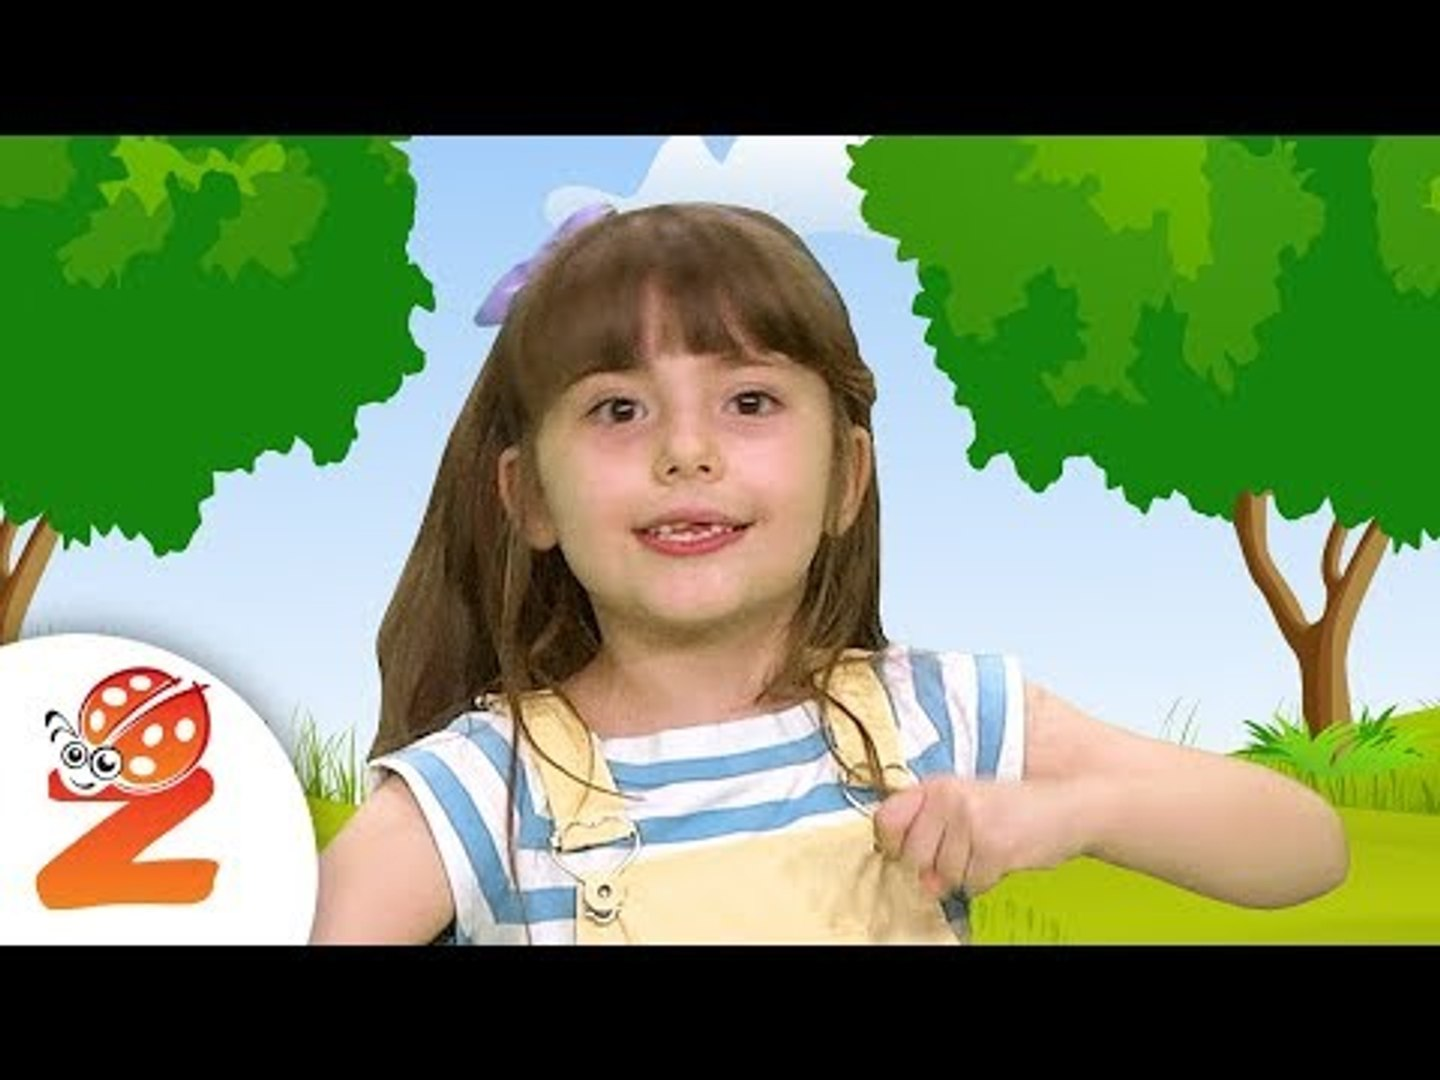 If You Re Happy And You Know It Clap Your Hands Zouzouniatv Nursery Rhymes Kids Songs Video Dailymotion